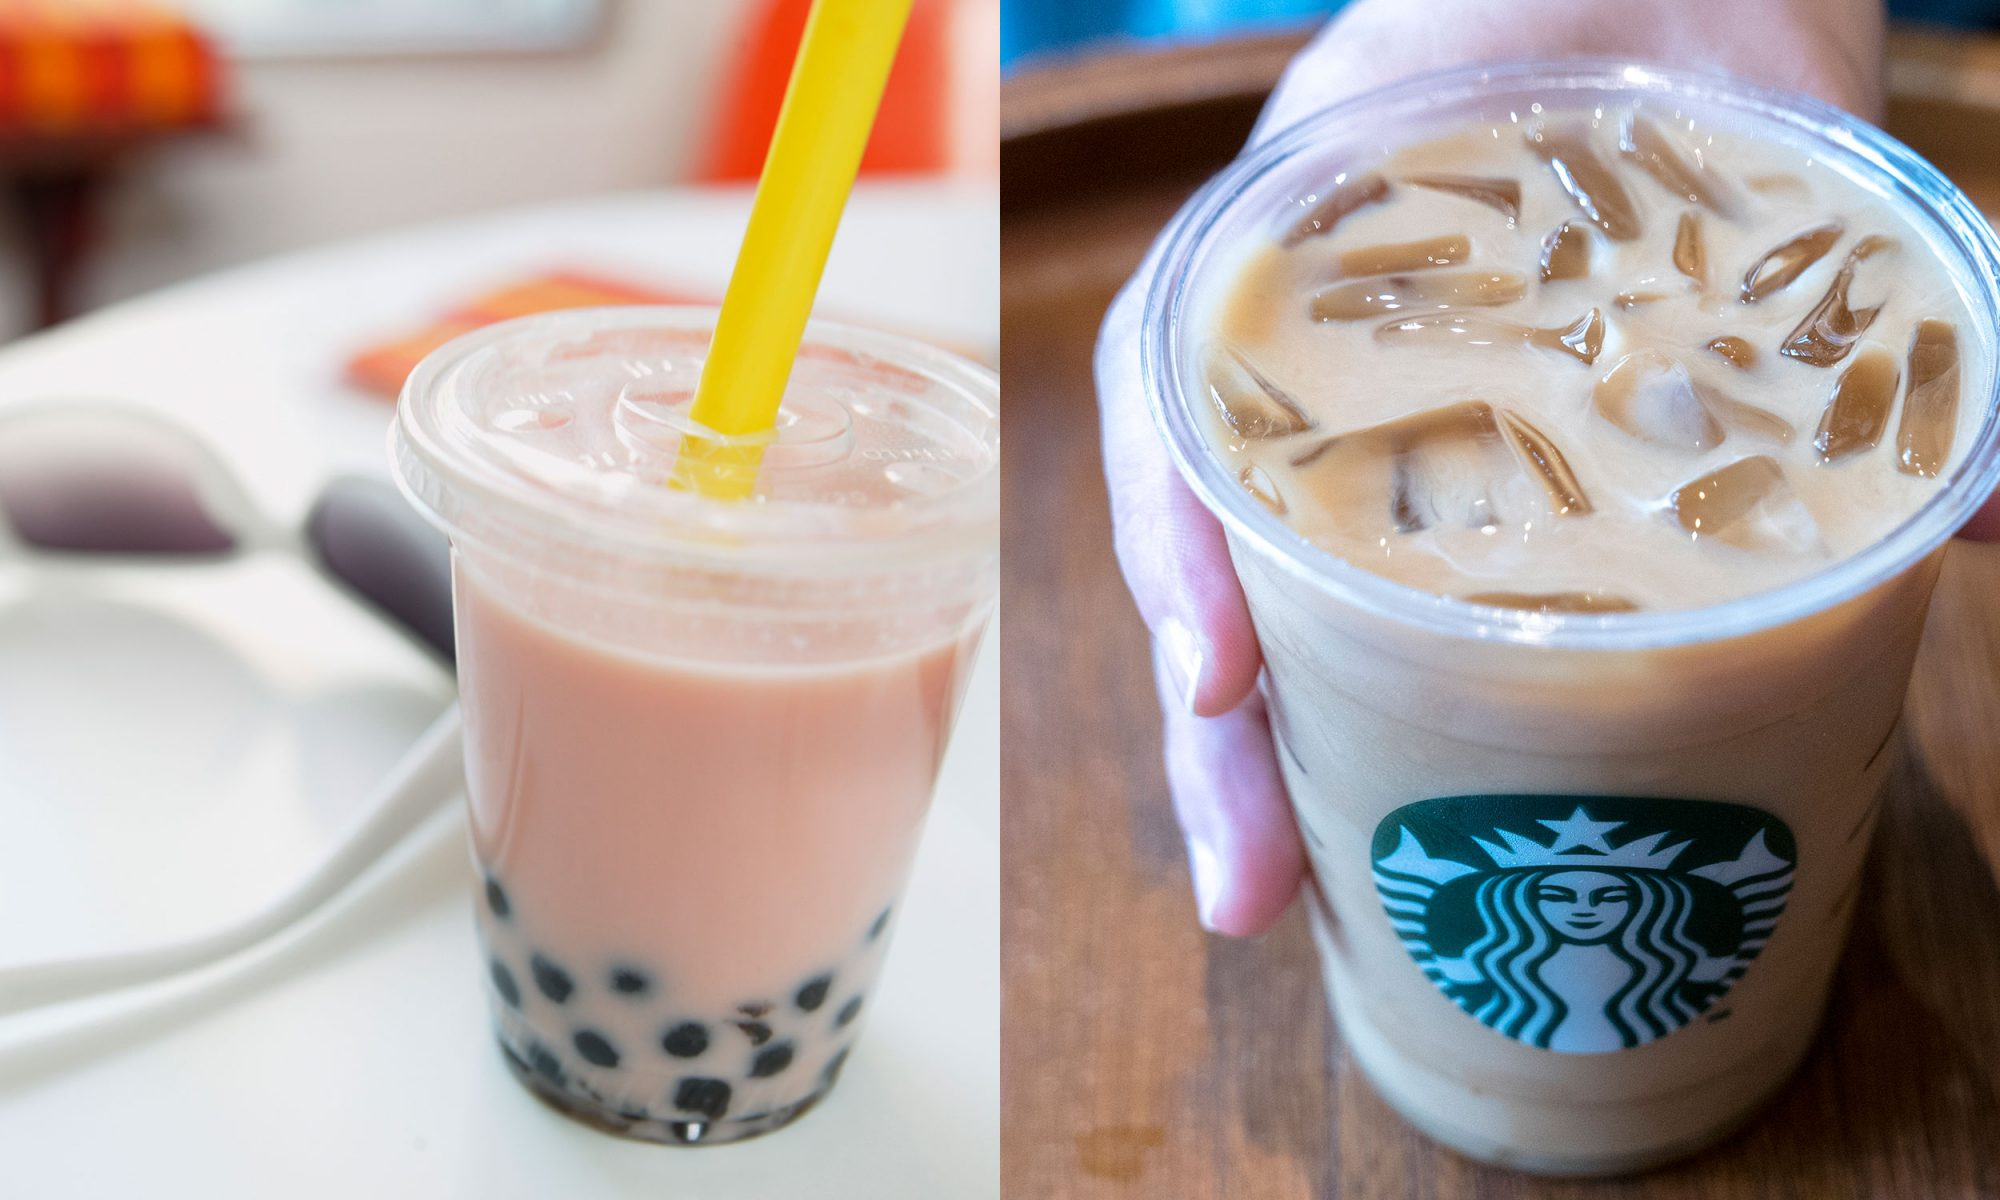 EC: Starbucks Says This Boba Shop Can't Serve Drinks To Go